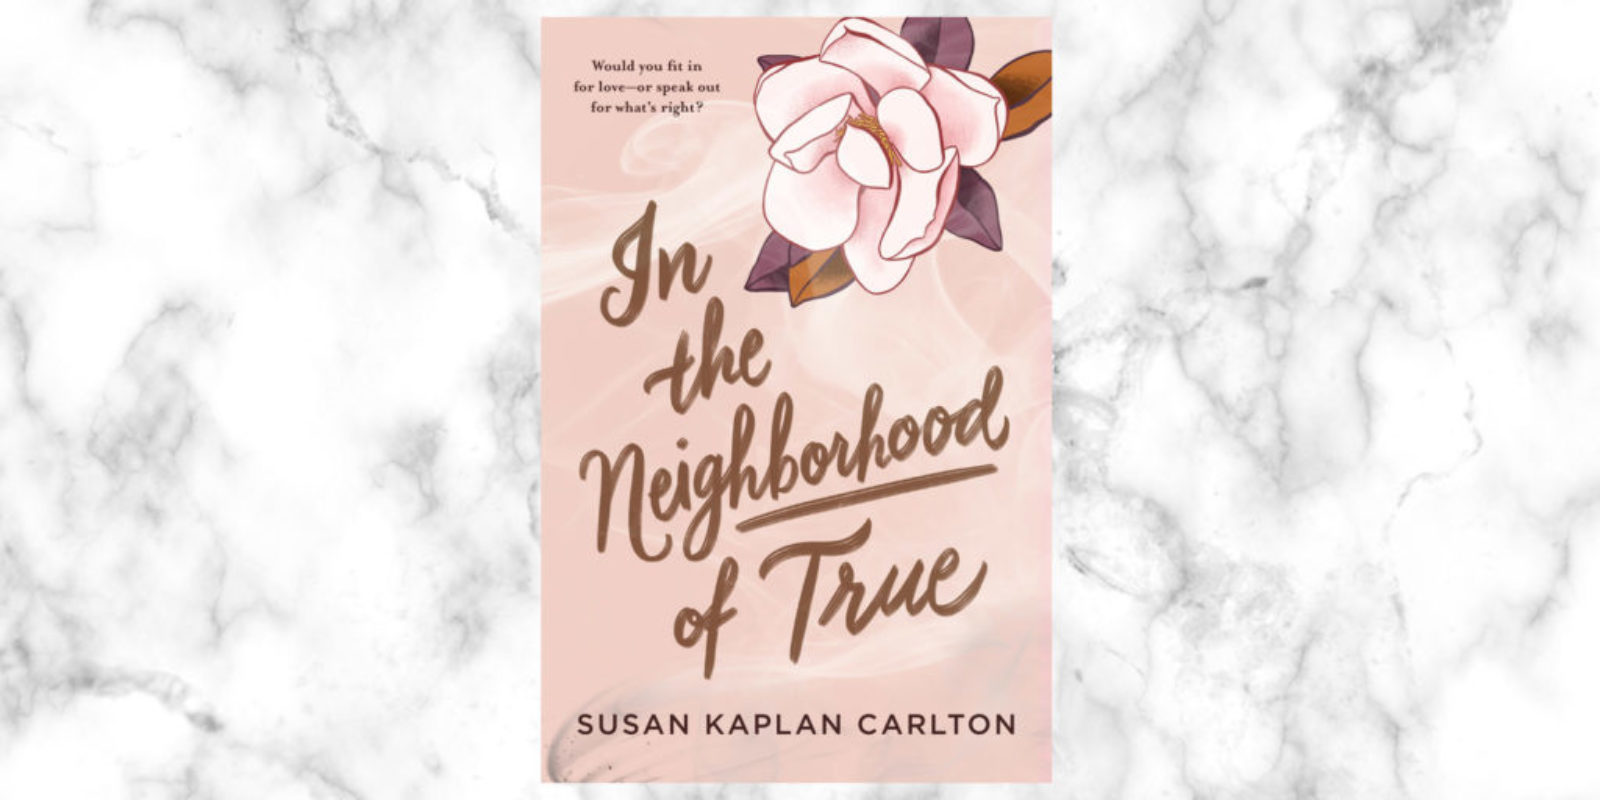 In-the-Neighborhood-of-True-by-Susan-Kaplan-Carlton-Header